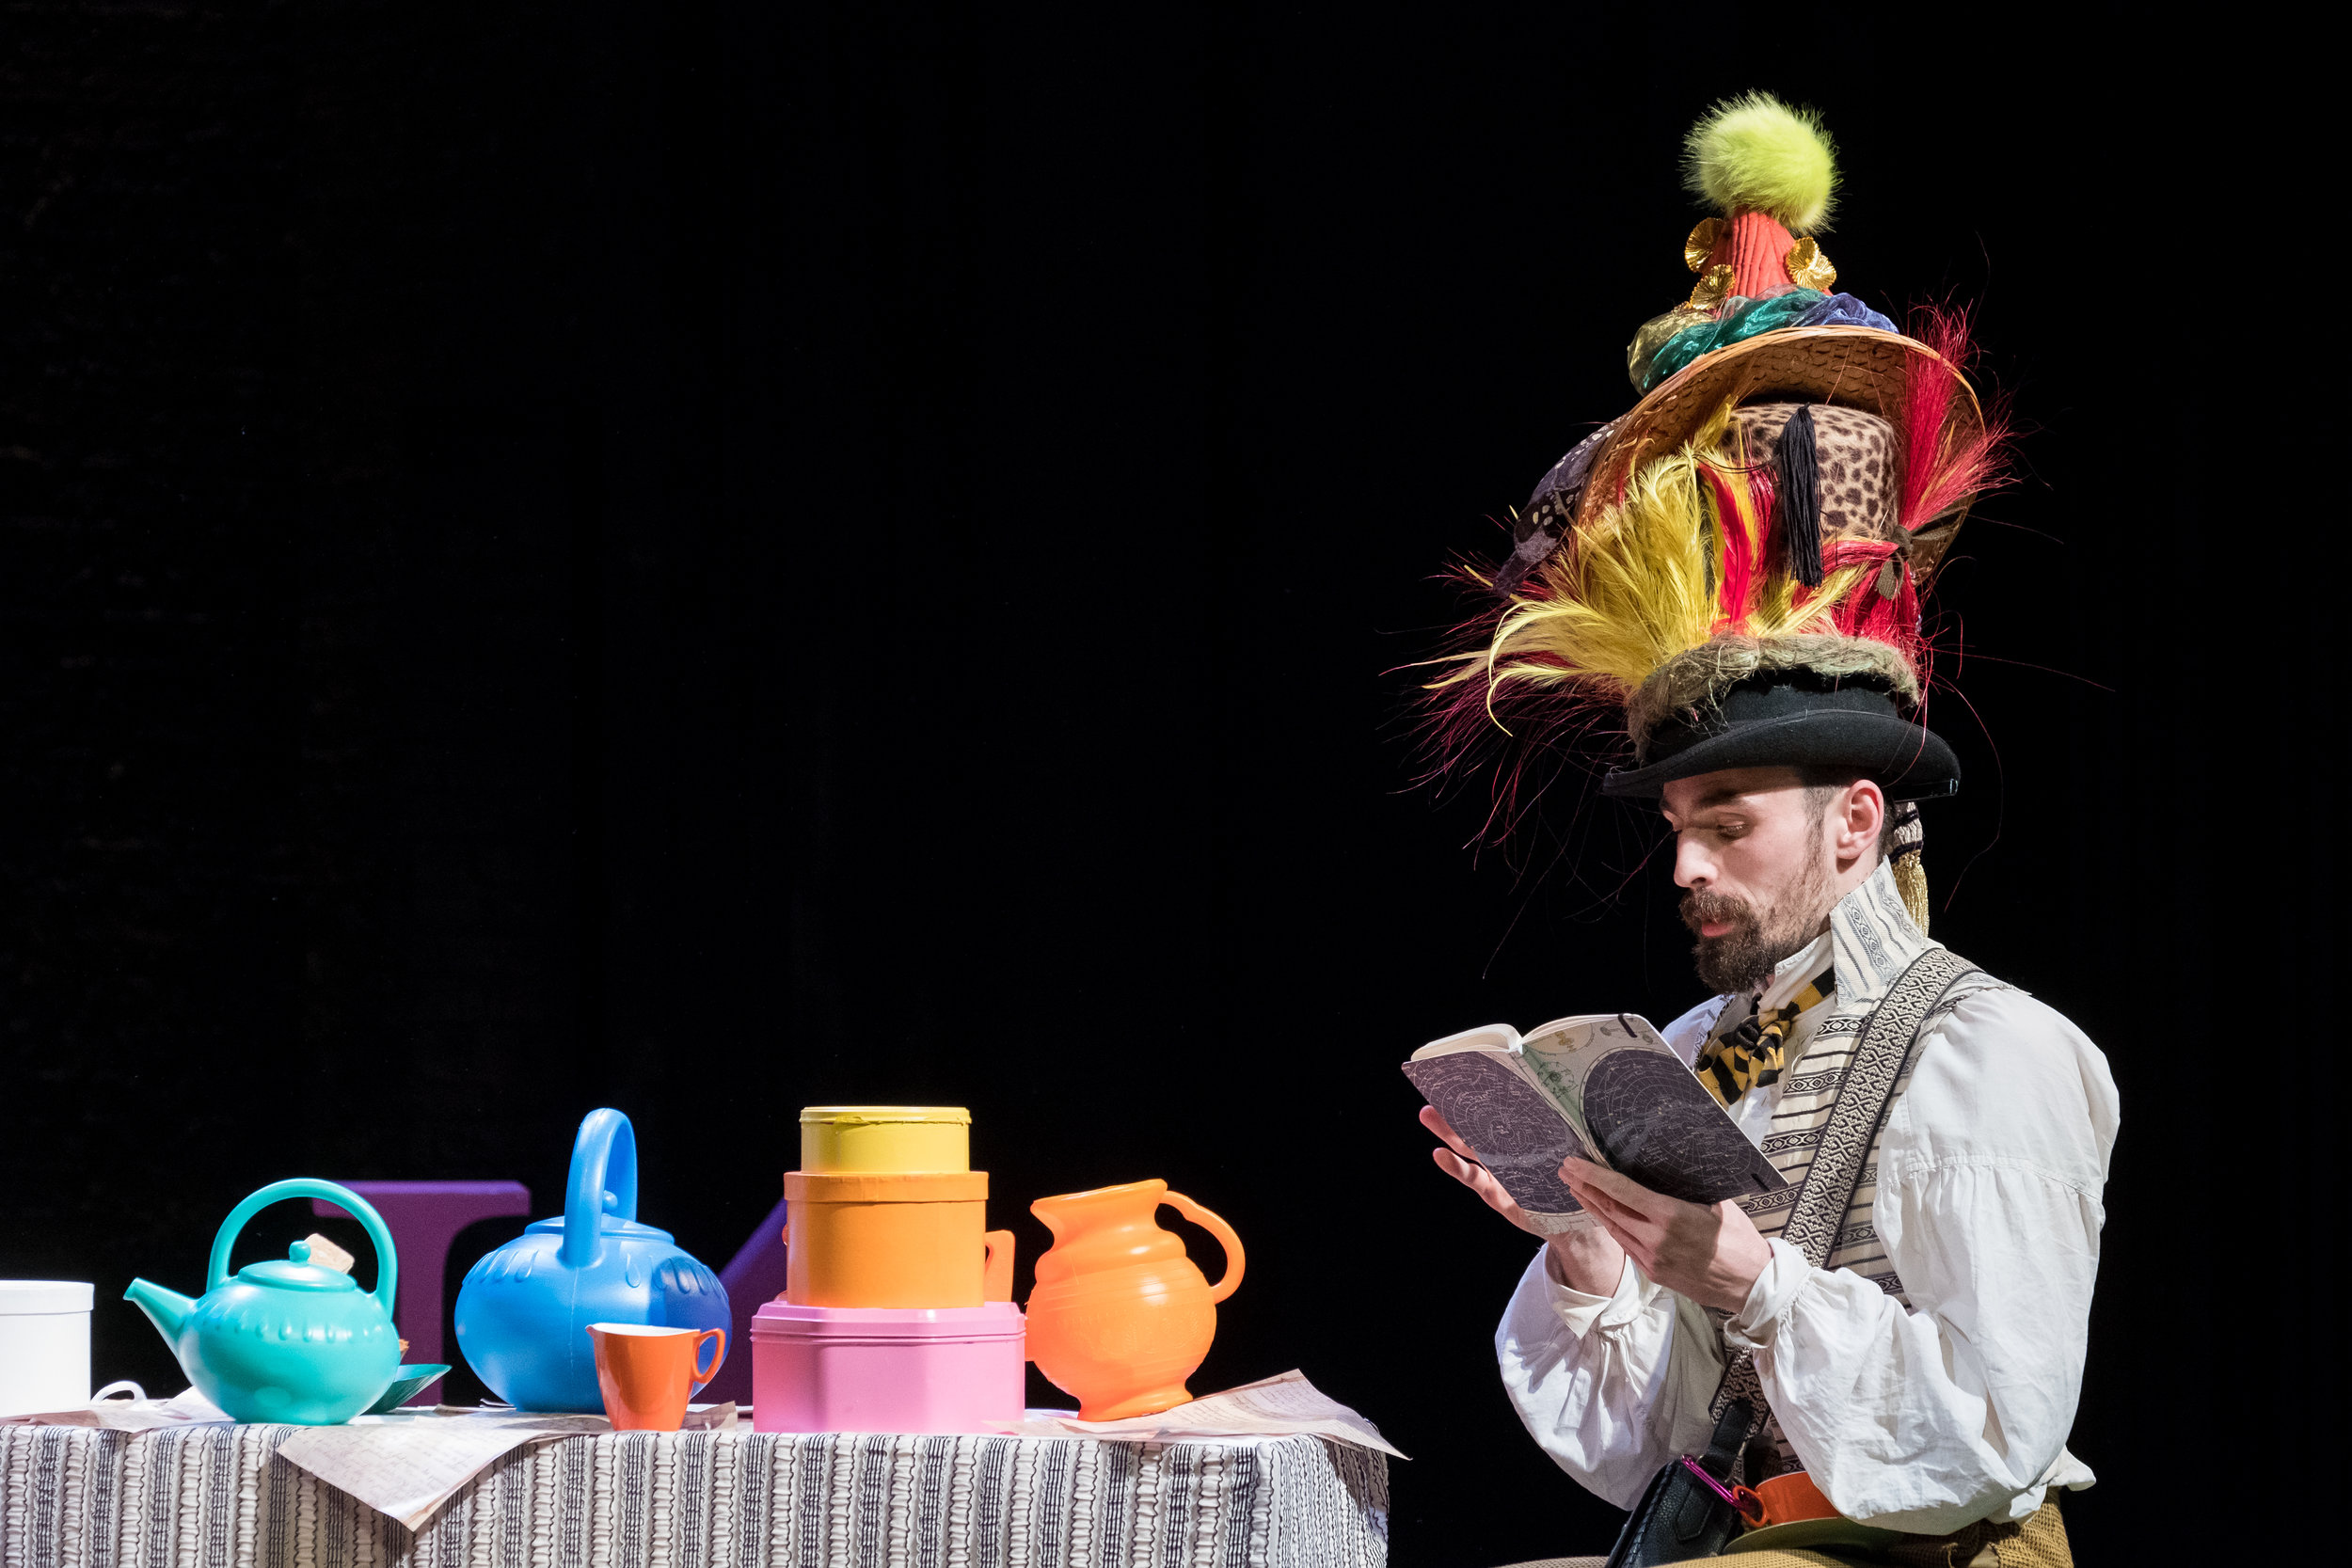 Alex Mugnaioni in Alice in Wonderland, Storyhouse, composed by Jude Obermüller (photo by Mark McNulty)